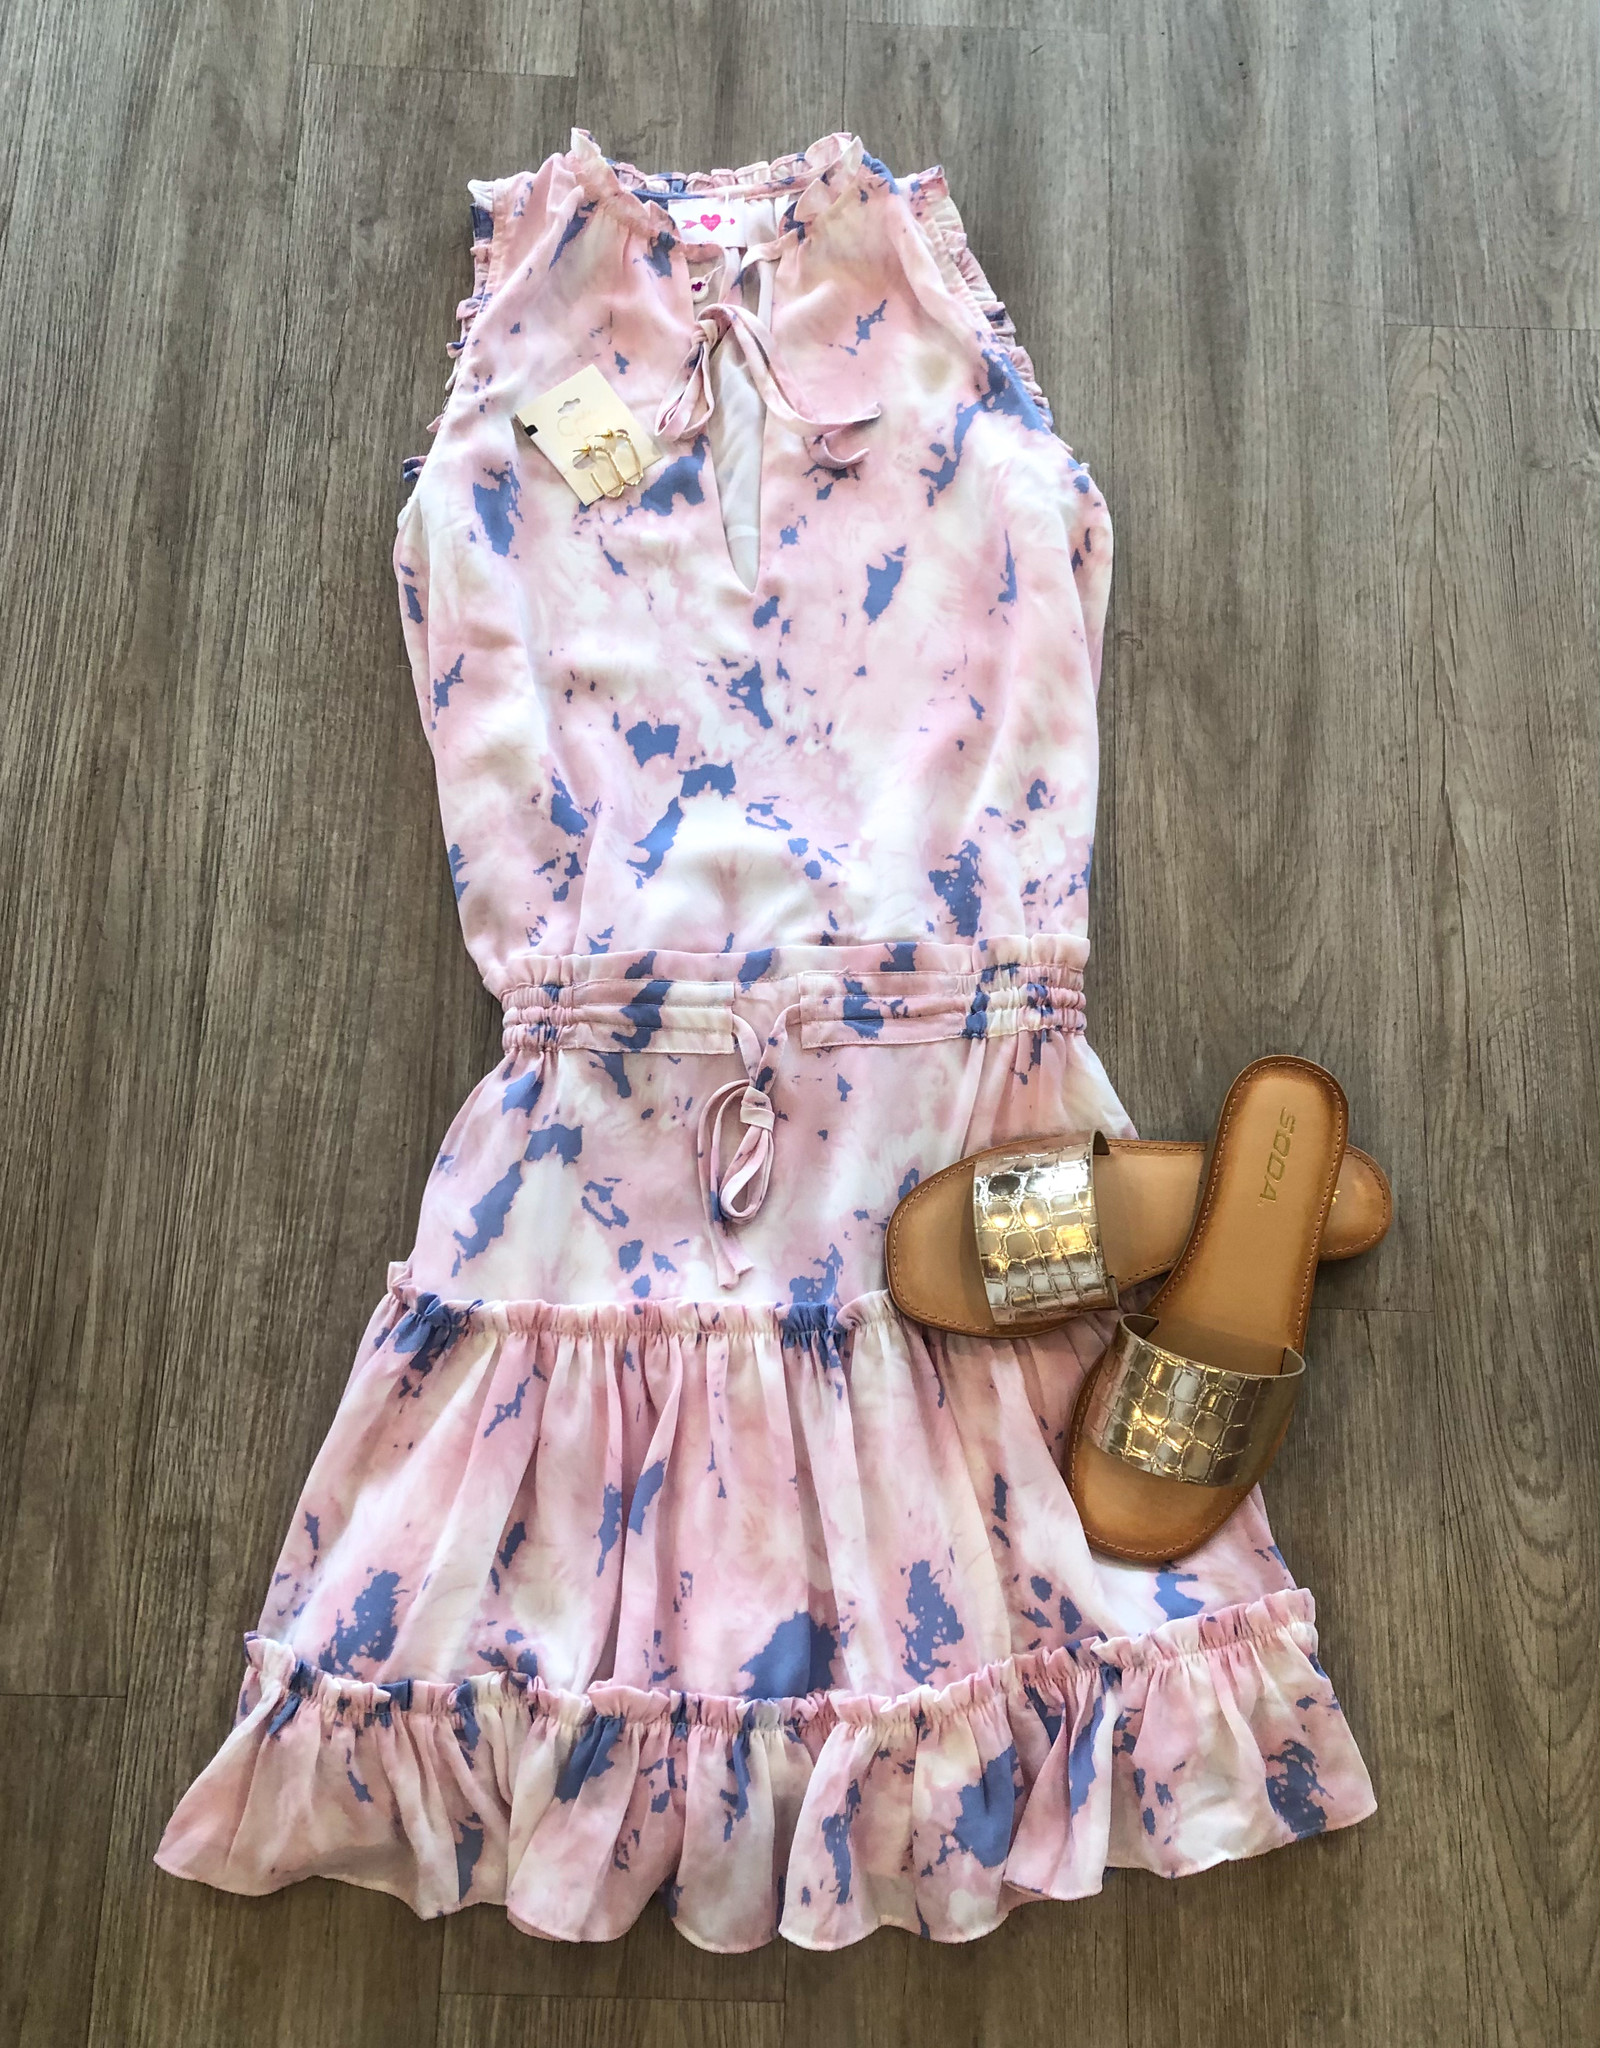 Buddy Love Buddy Love Sage Dress